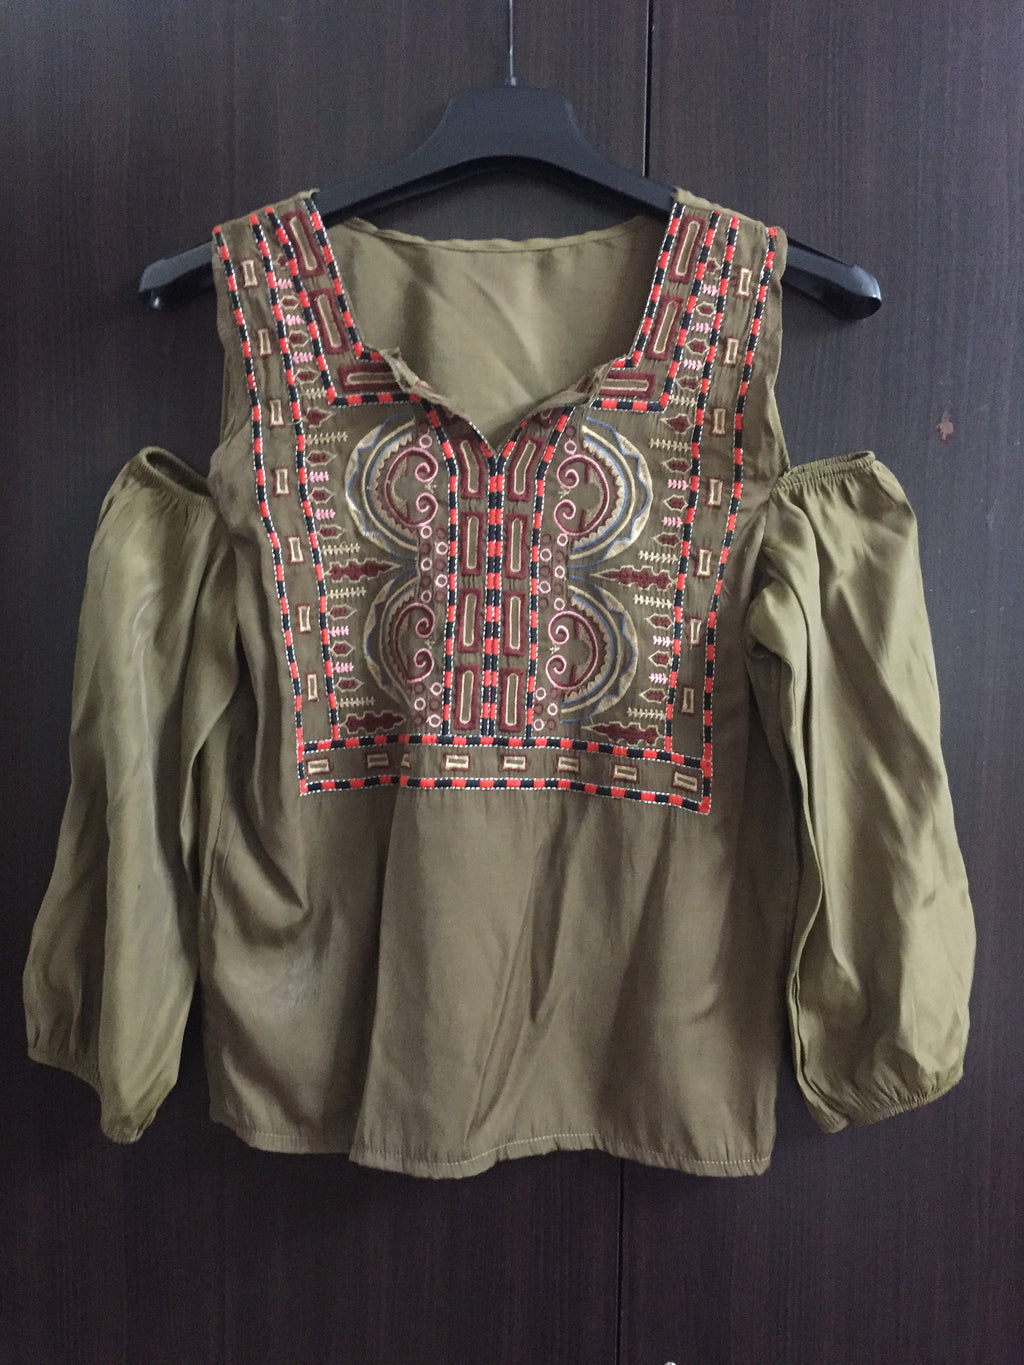 Fitted Cold-Shoulder Top - Brown with front embroidery.